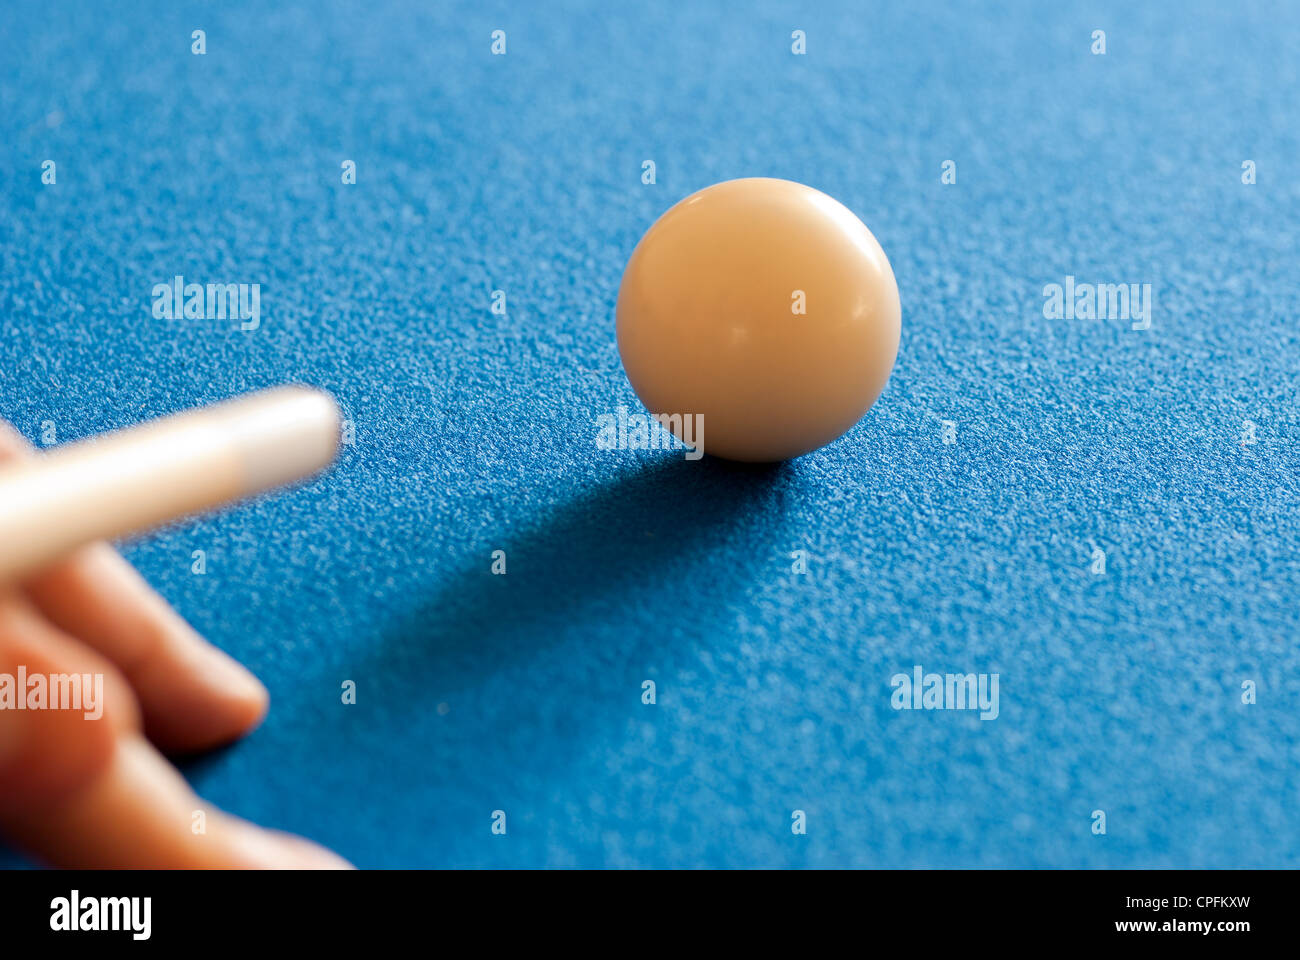 Pool cue about to strike a cue ball - Stock Image